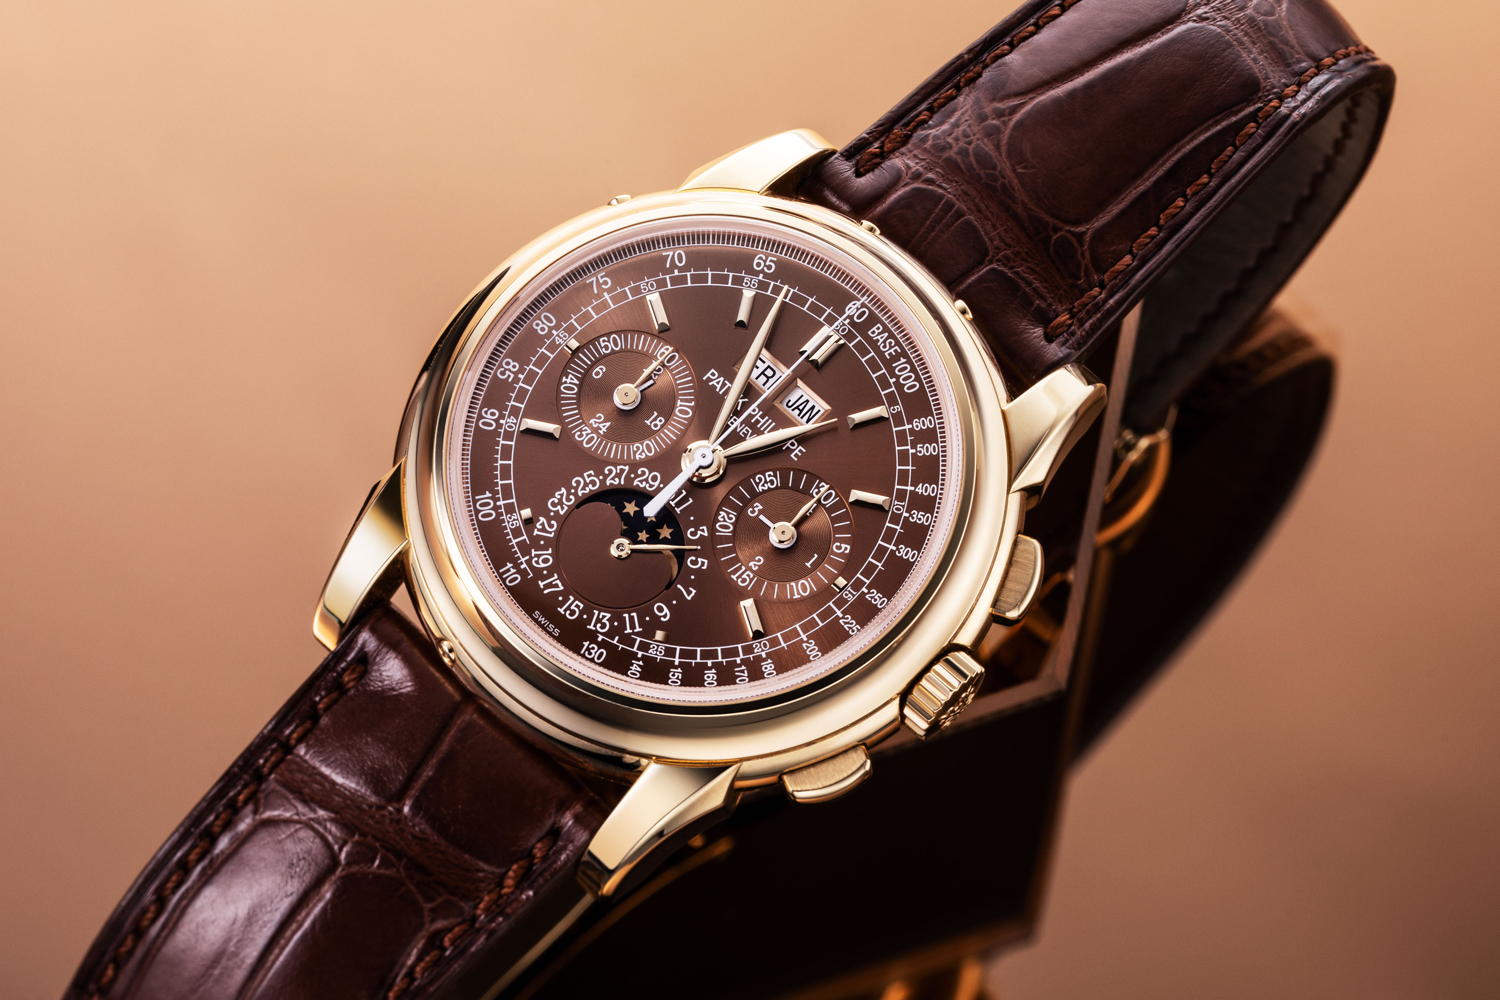 Wei's Patek Philippe Perpetual Calendar Chronograph 5970, this variation is a very special end-of-series execution with a bronze dial (Image © Revolution)